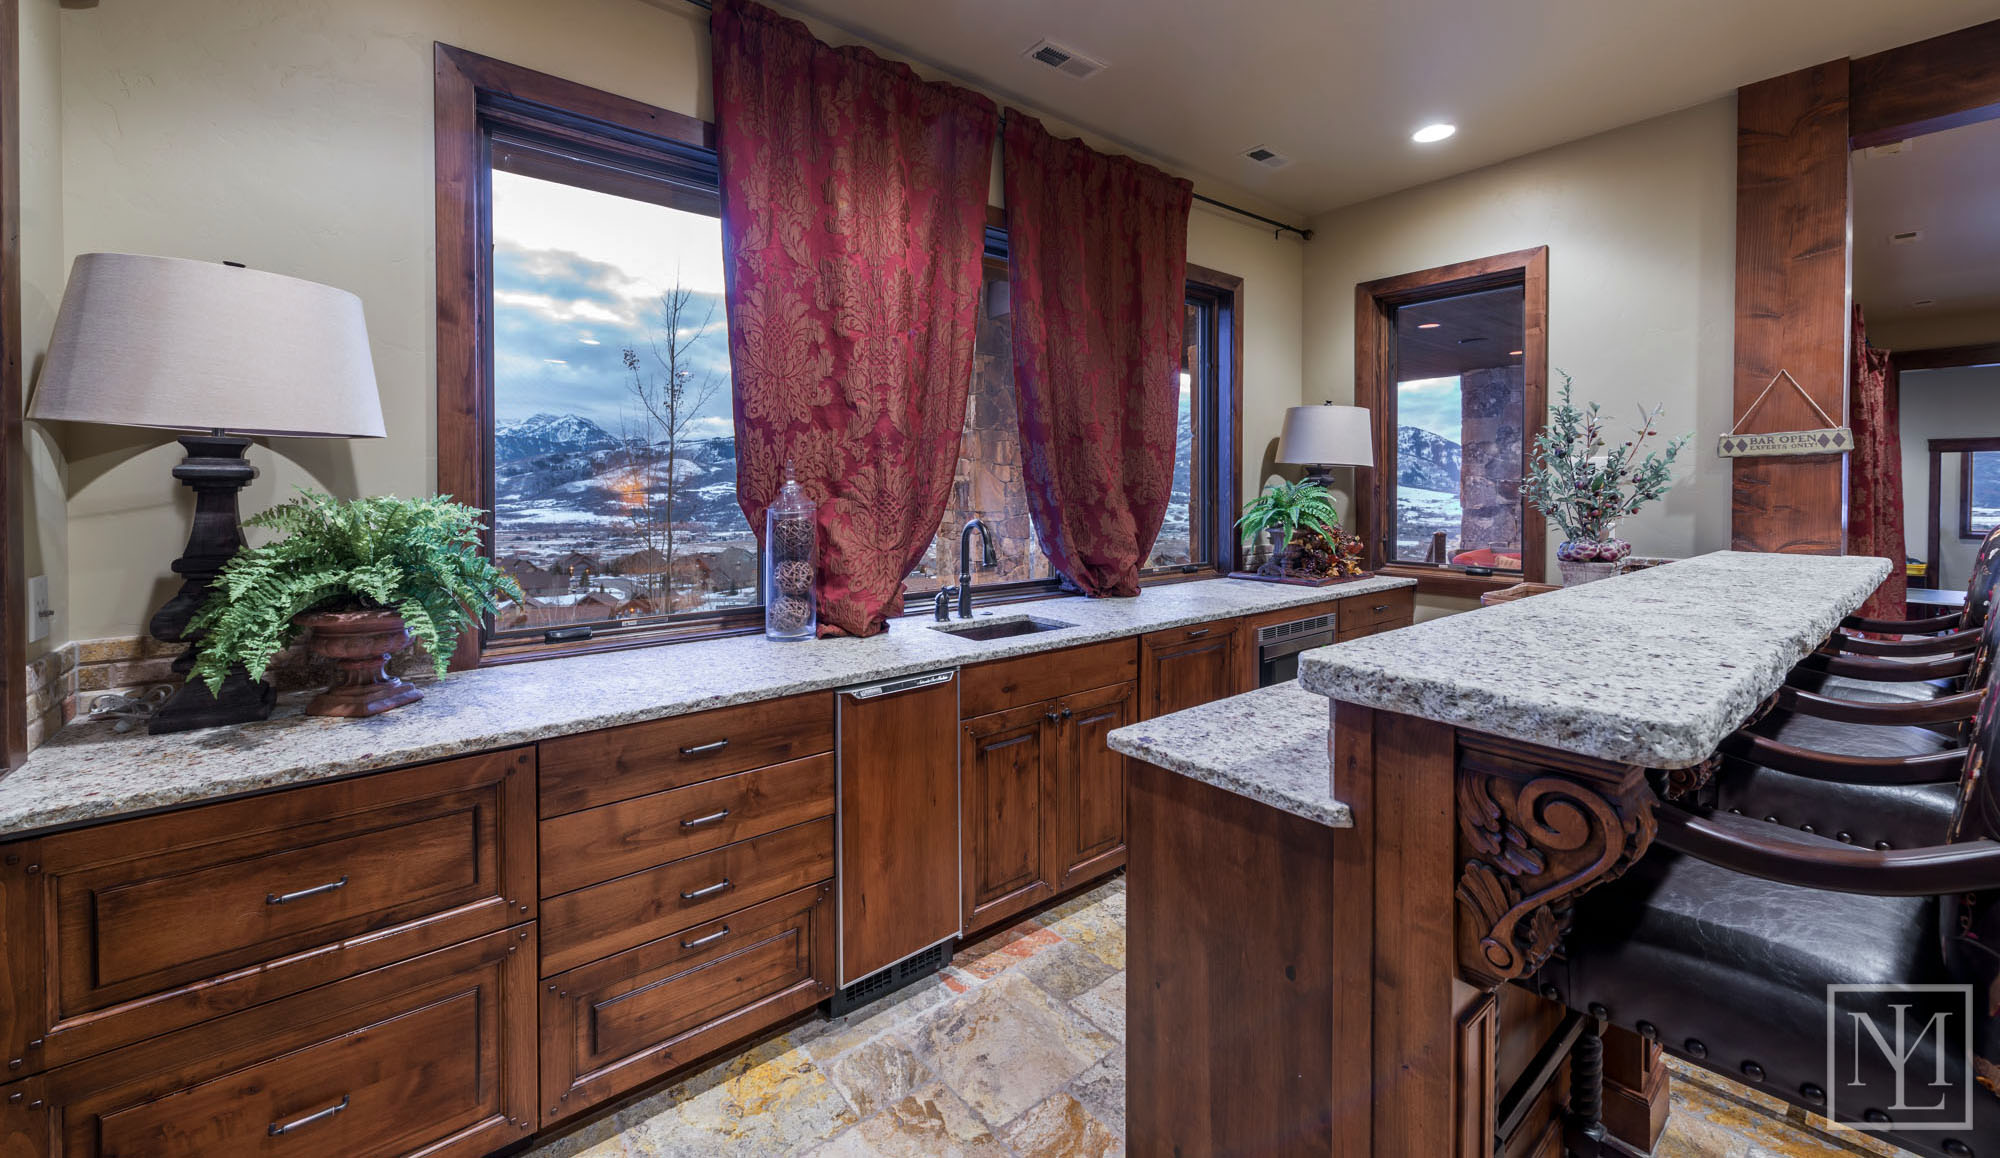 3571 Pineview Ct Wet Bar